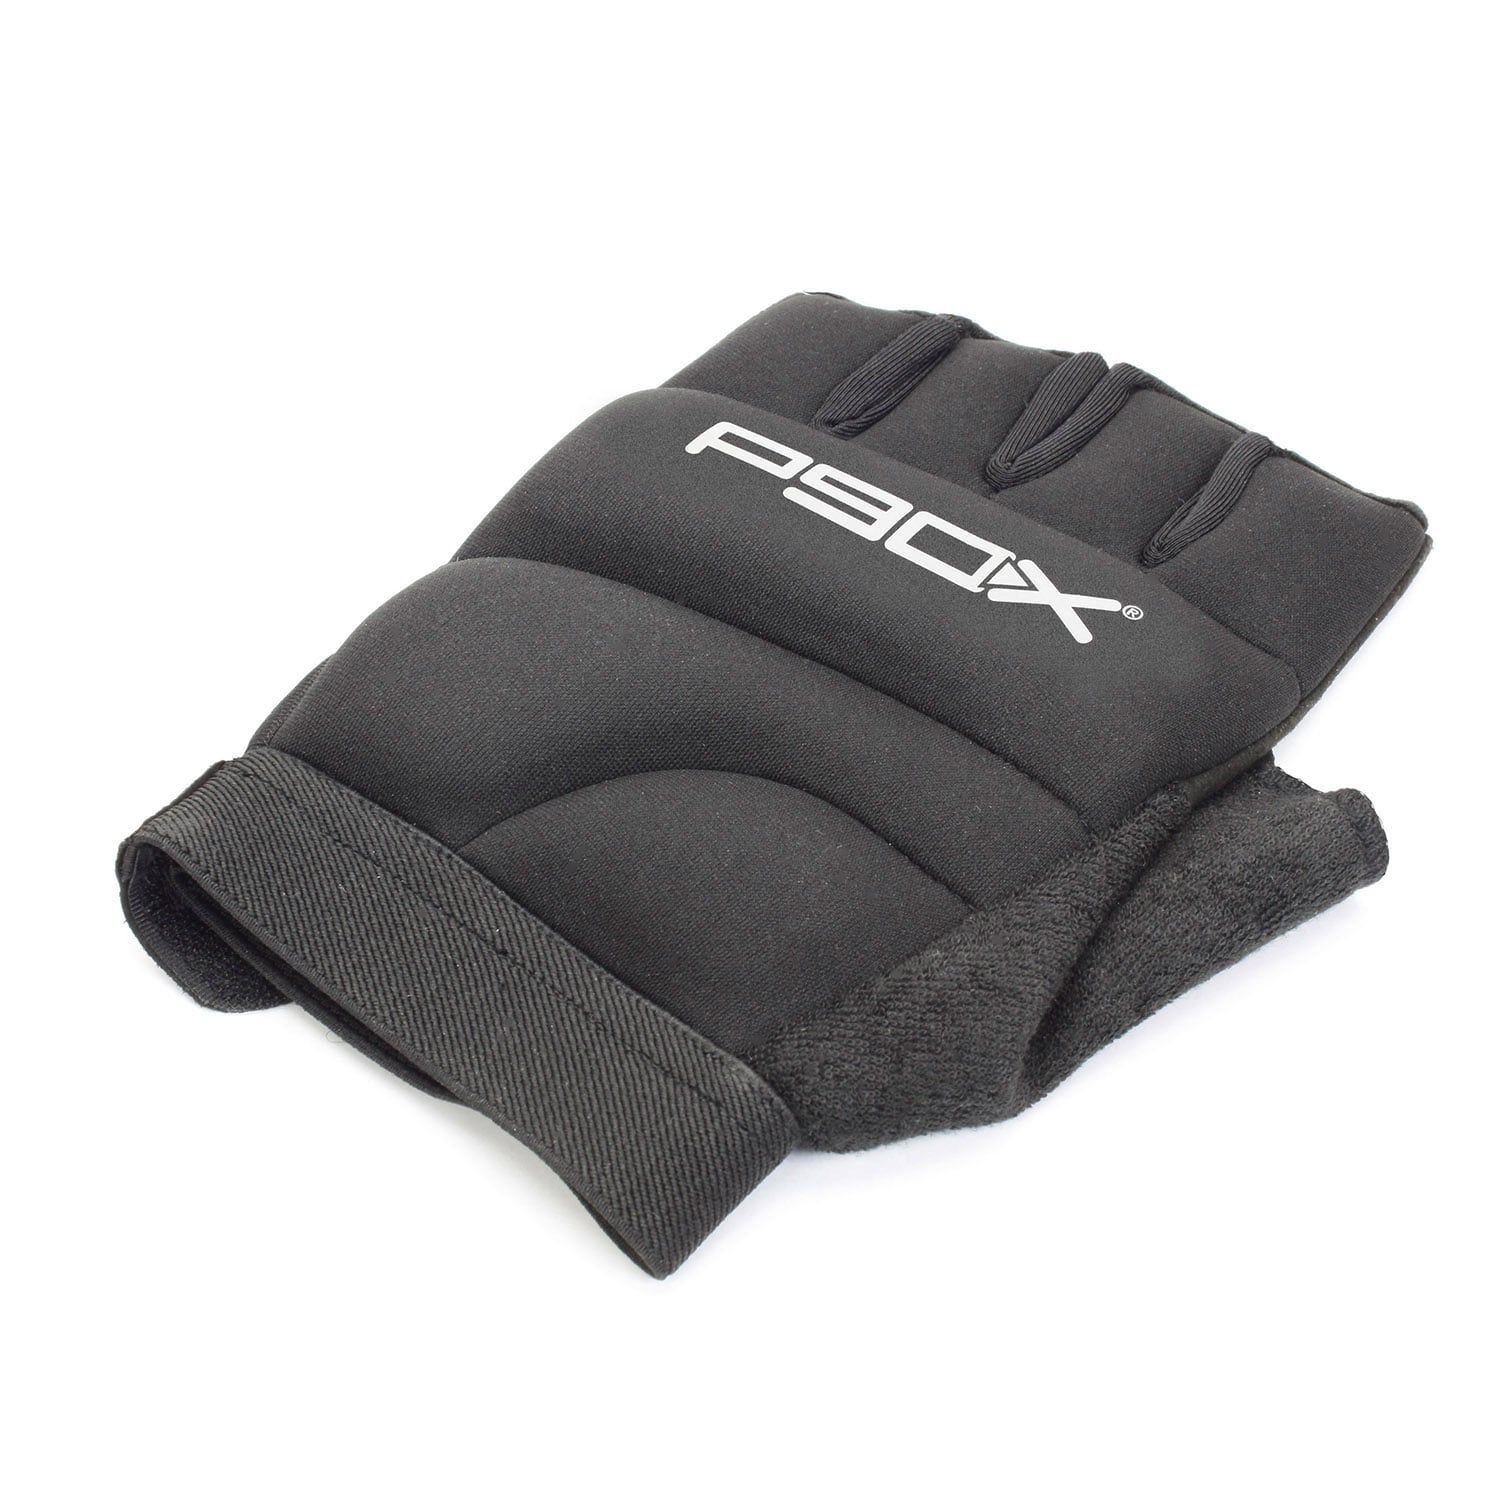 P90x 2 Lb Full Palm Weighted Gloves Full Lb P90x